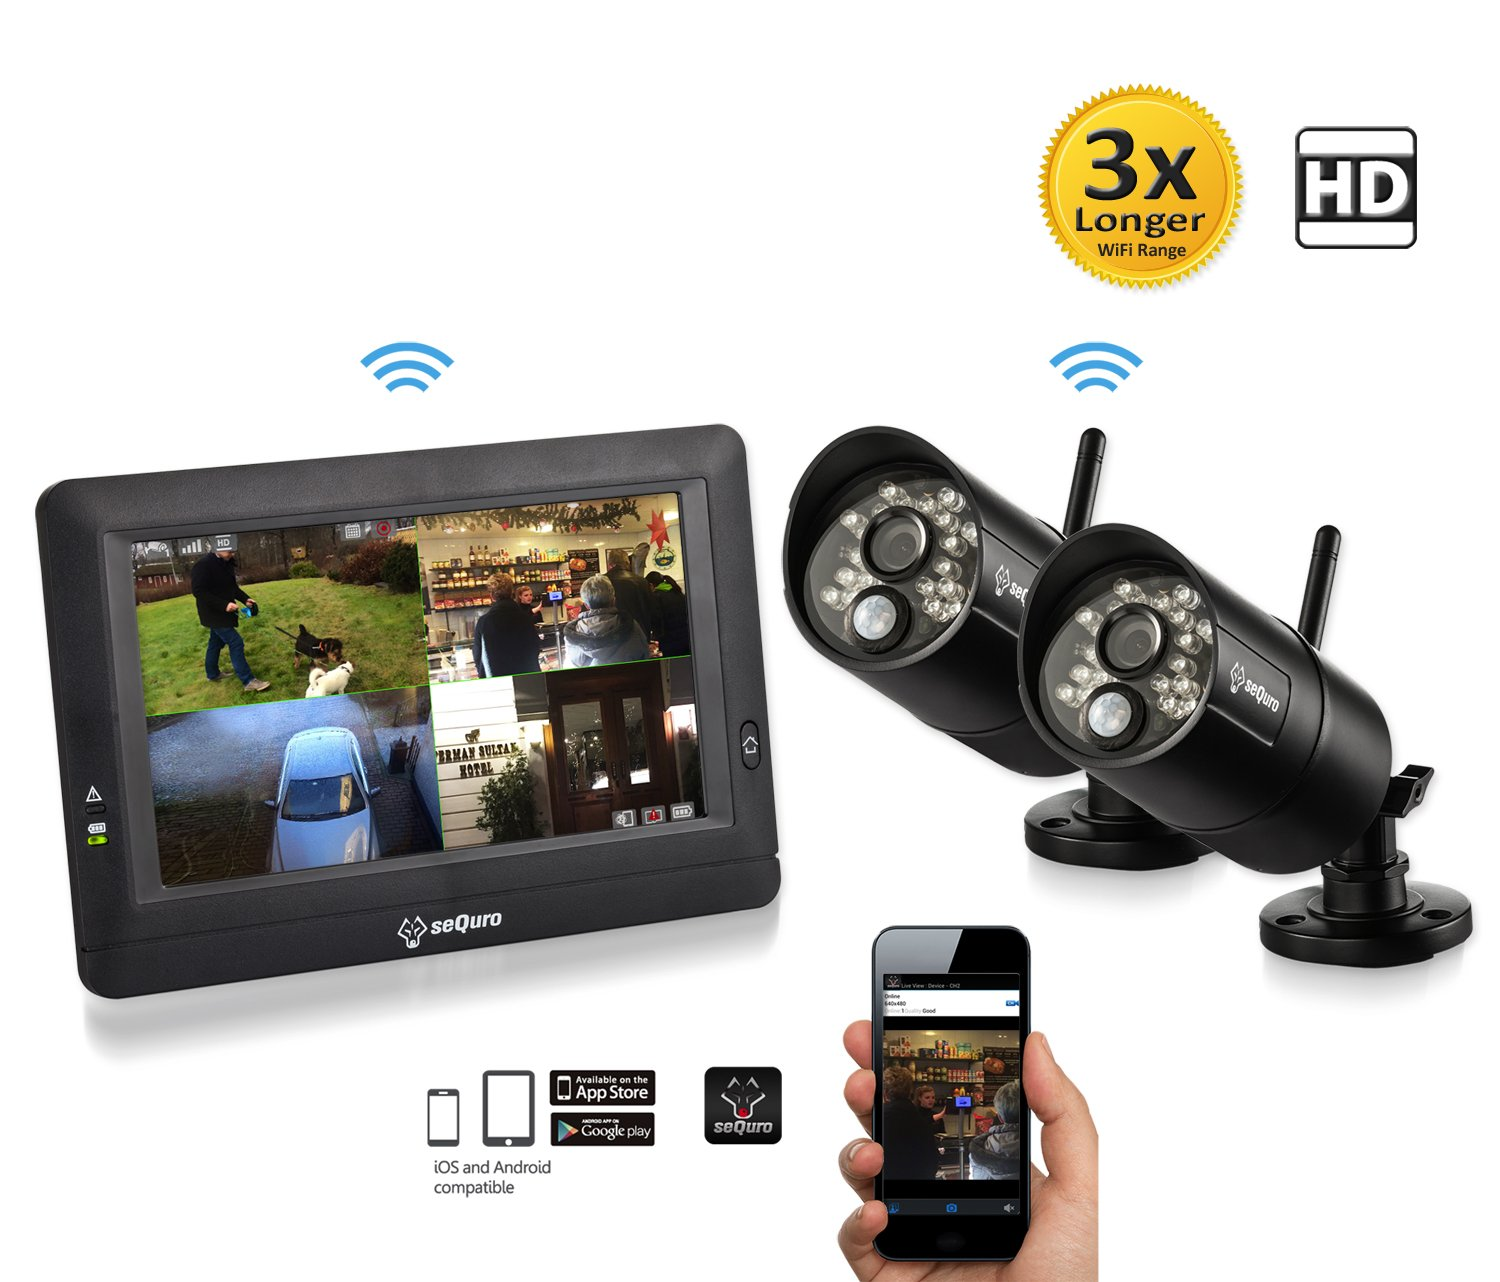 SEQURO GuardPro DIY Surveillance System with 7'' Wireless Touchscreen Monitor and 2 Outdoor/Indoor IP66 Weatherproof HD Security Cameras